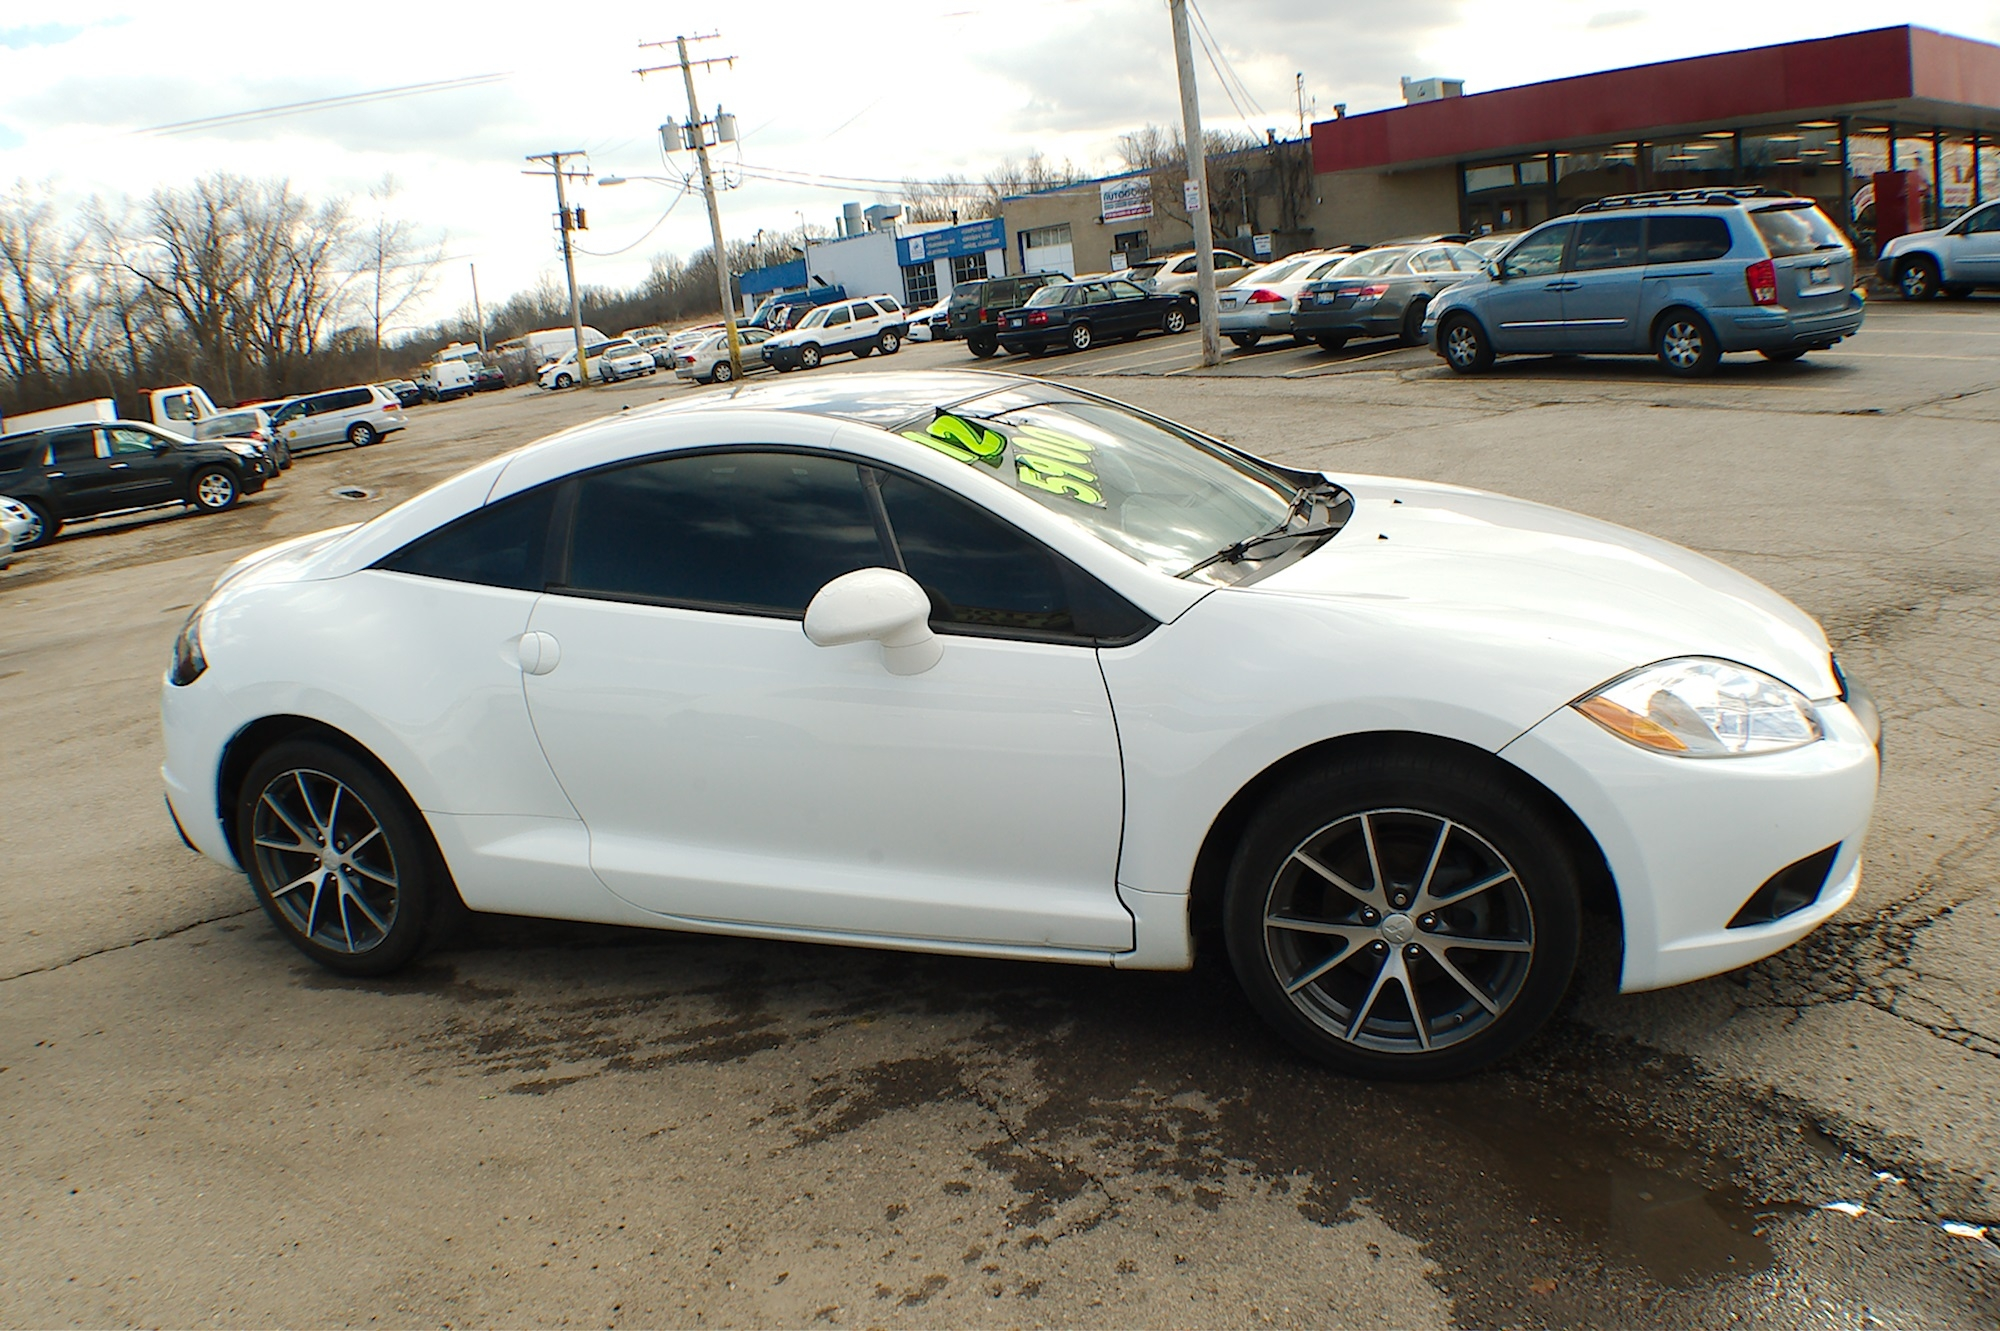 2012 Mitsubishi Eclipse White Coupe Used Car Sale Bannockburn Barrington Beach Park